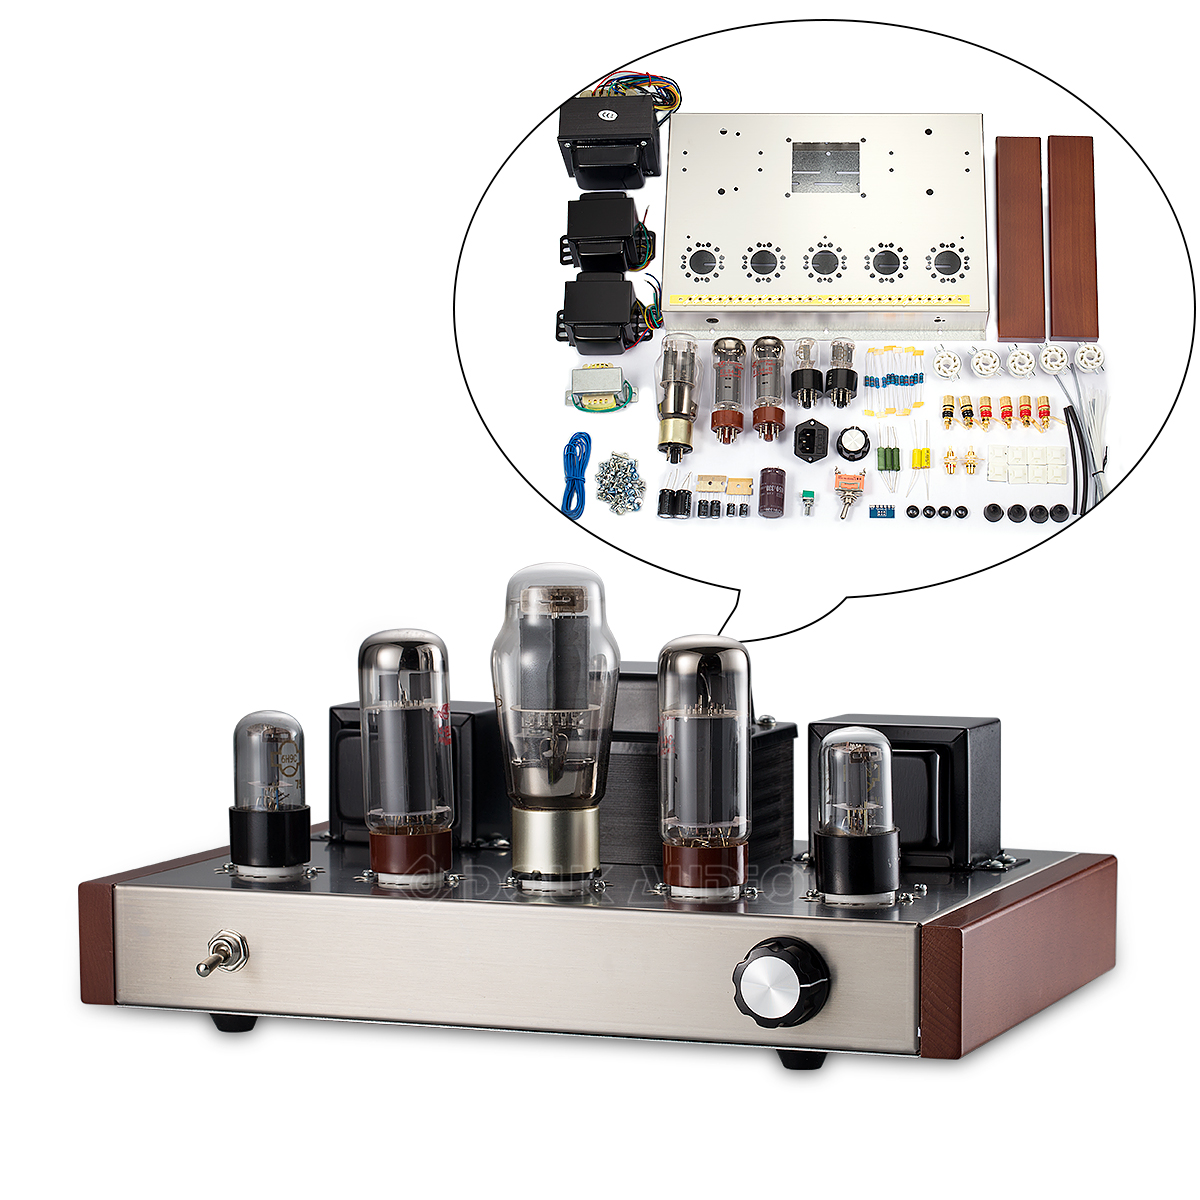 Details about HiFi EL34 Valve Tube Power Amplifier Class A Home Stereo  Audio Power Amp DIY KIT